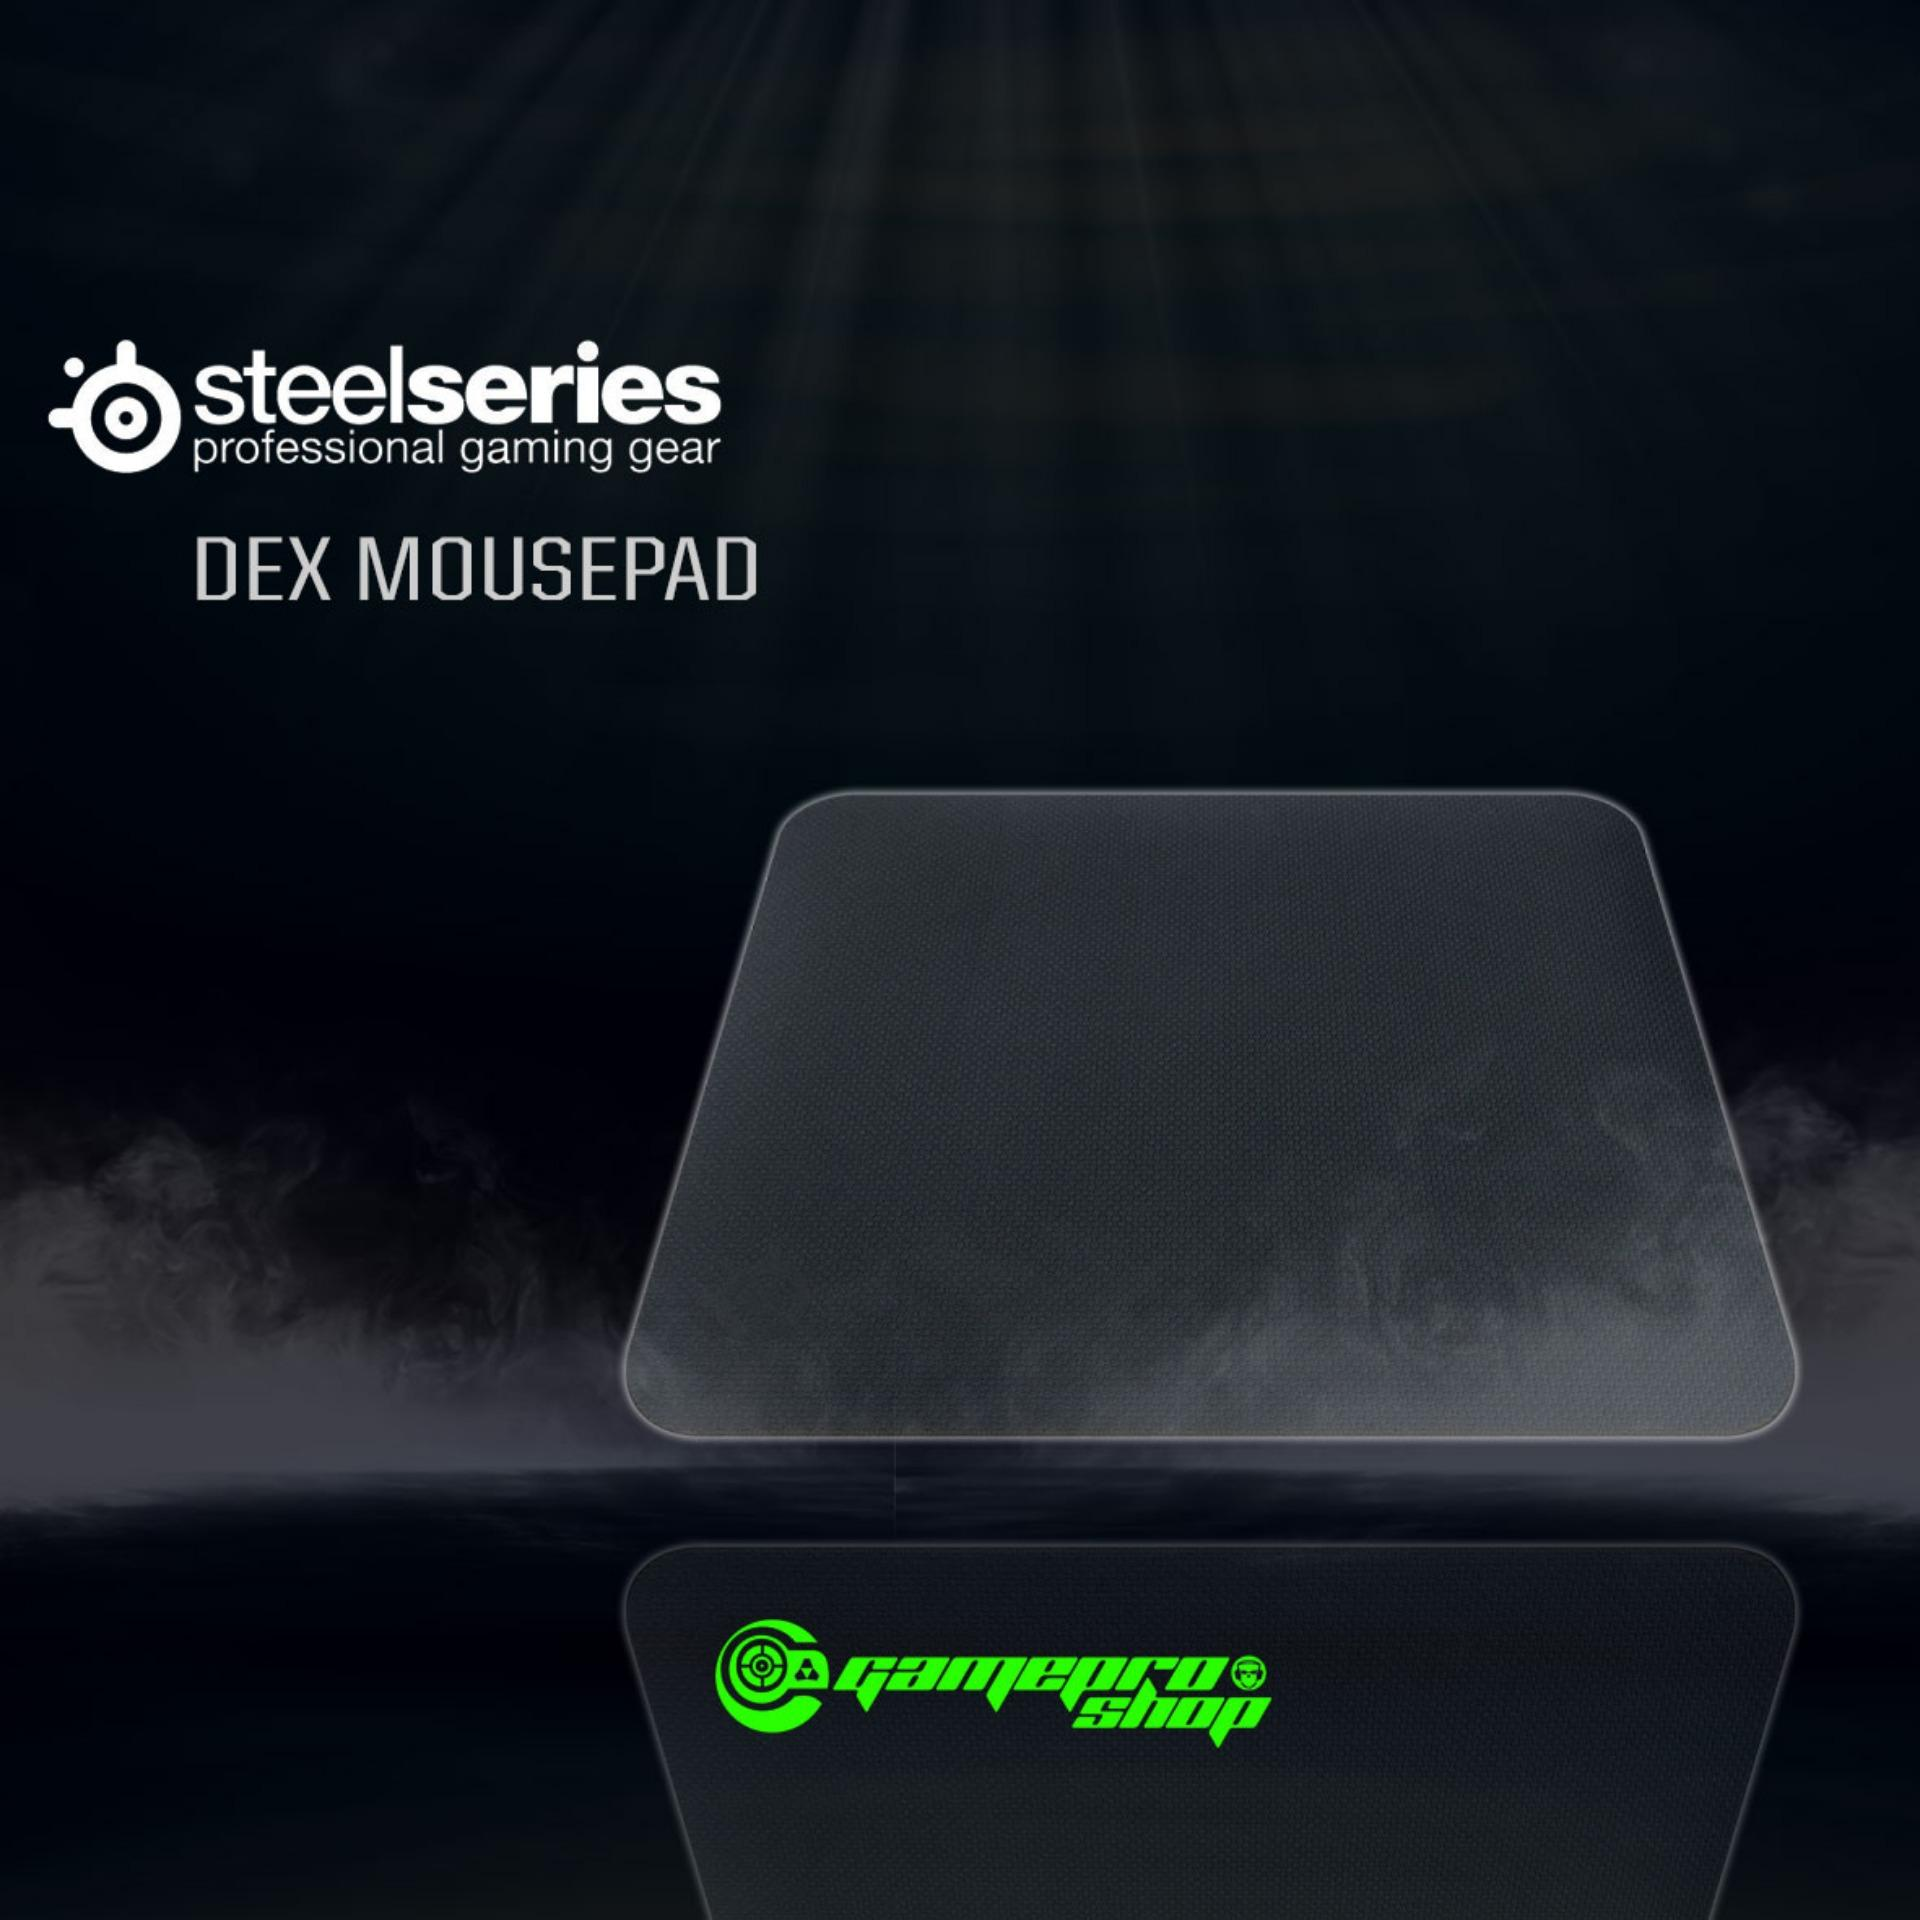 Steelseries 63500 Dex Mouse Pad Gss Promo Review